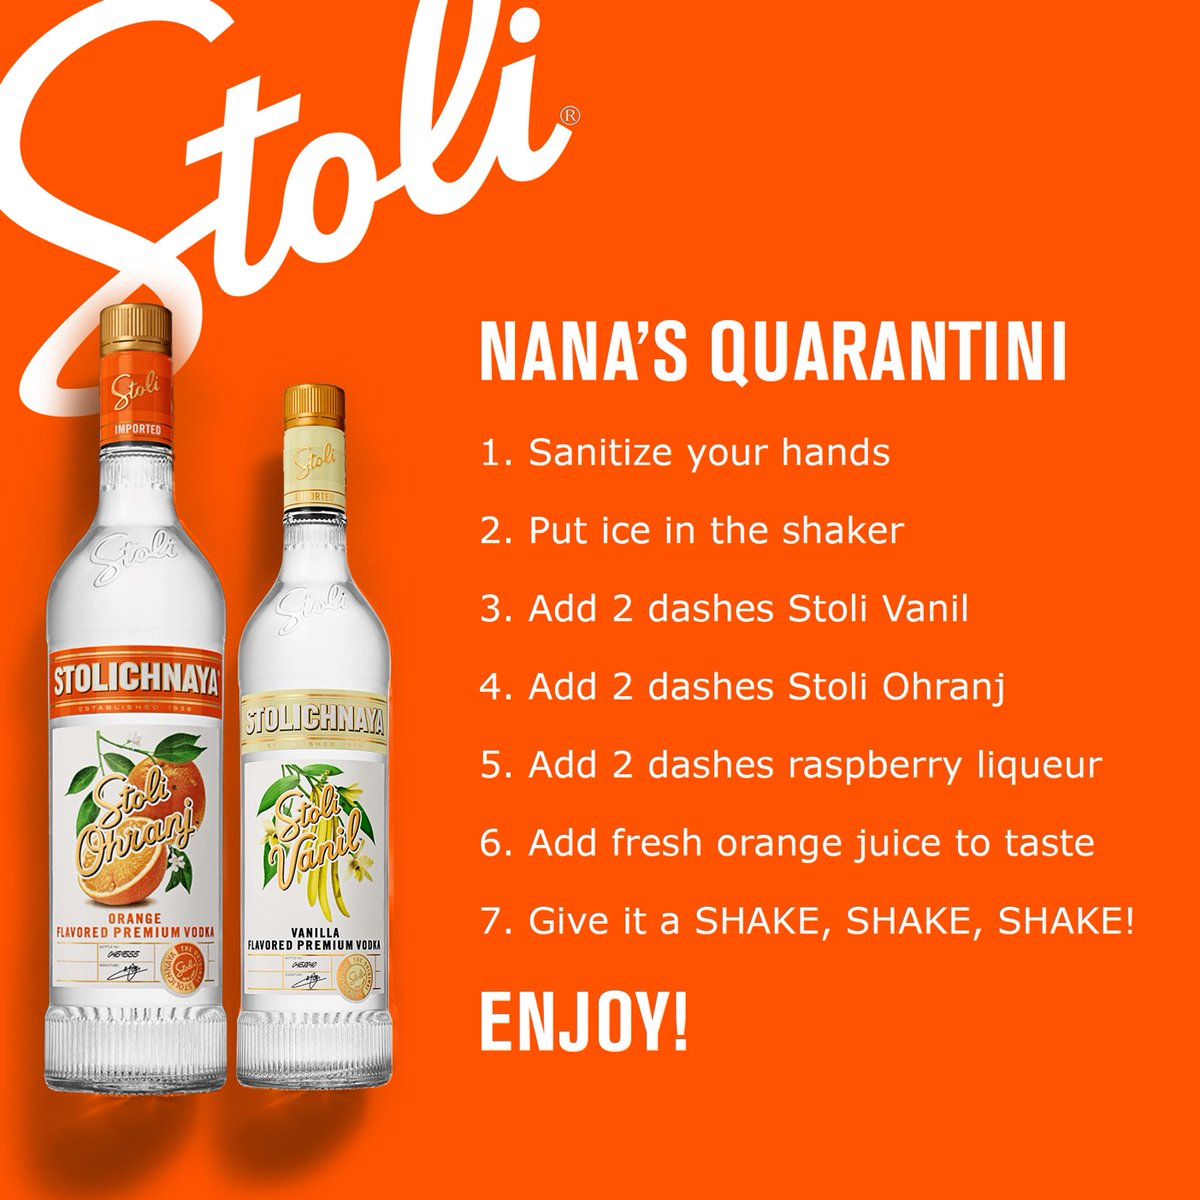 Make your own Nana's Quarantini with Stoli Vanil & Stoli Ohranj delivered to your doorstep with @MinibarDelivery https://t.co/9dekCcMsTE